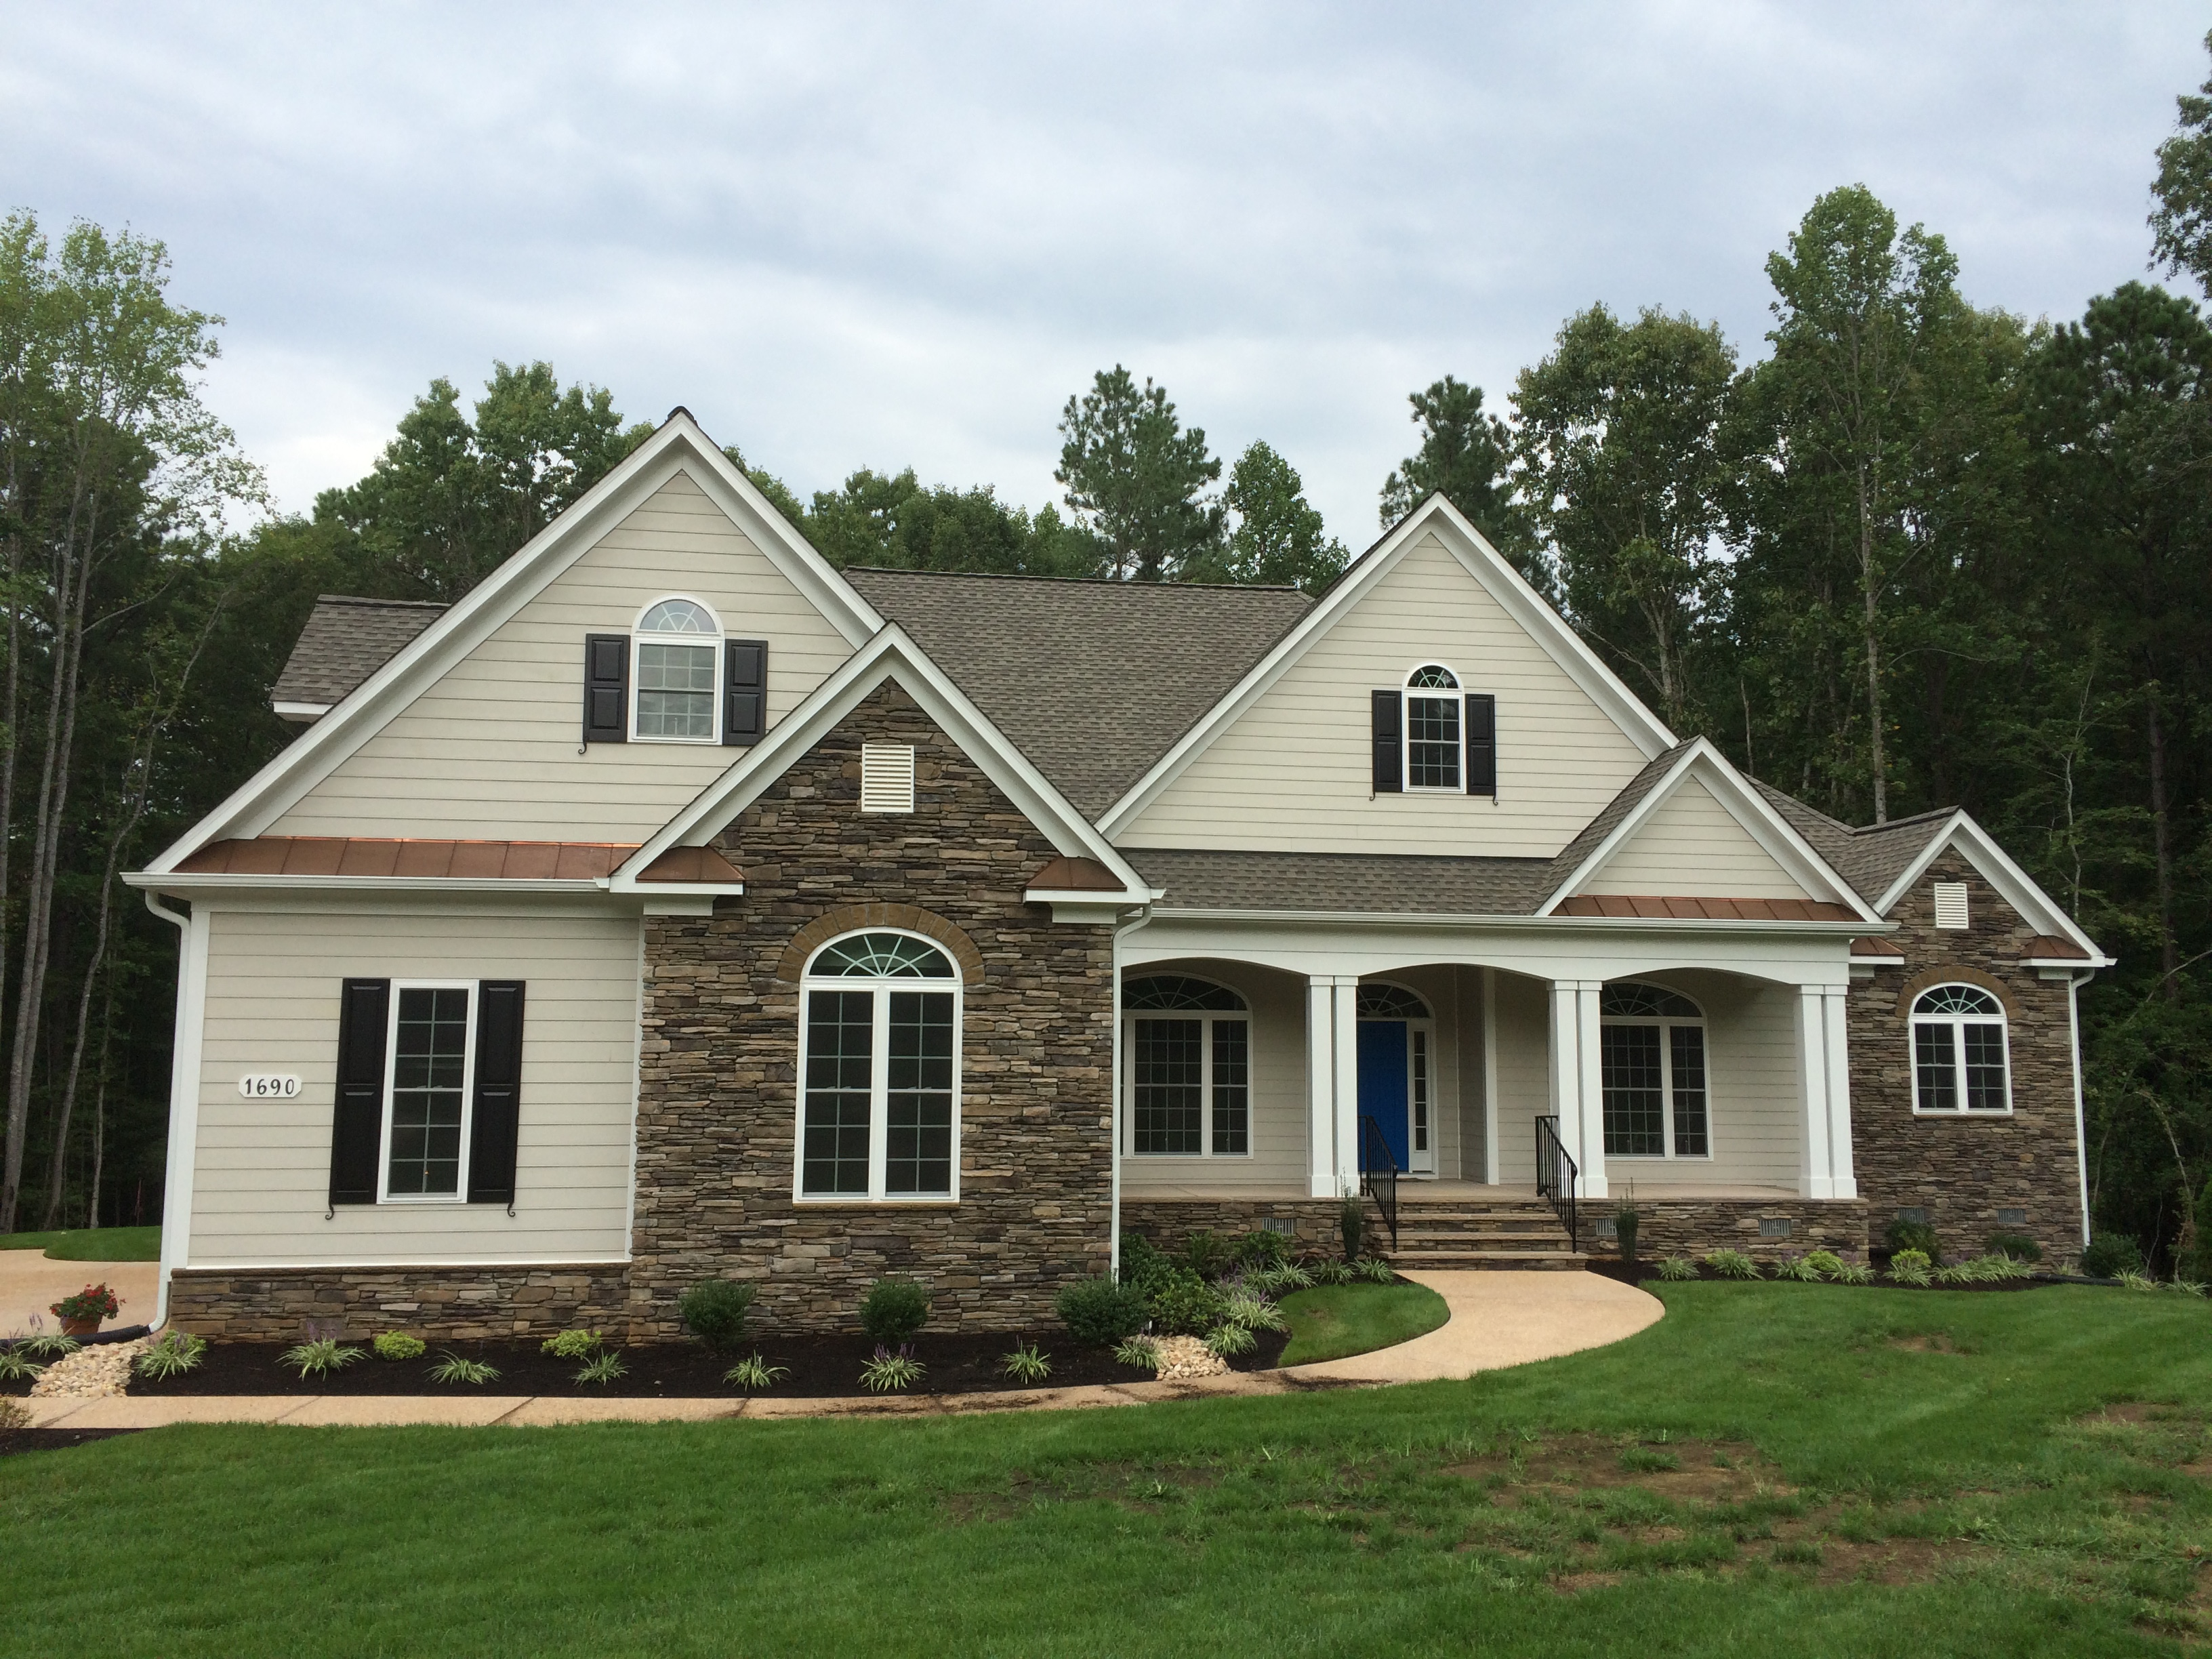 Wayne Harbin Builders Currently Have Two Furnished Models In The Area, One  In Fords Colony And The Other At The Retreat. As The Sole Southern Living®  Custom ...